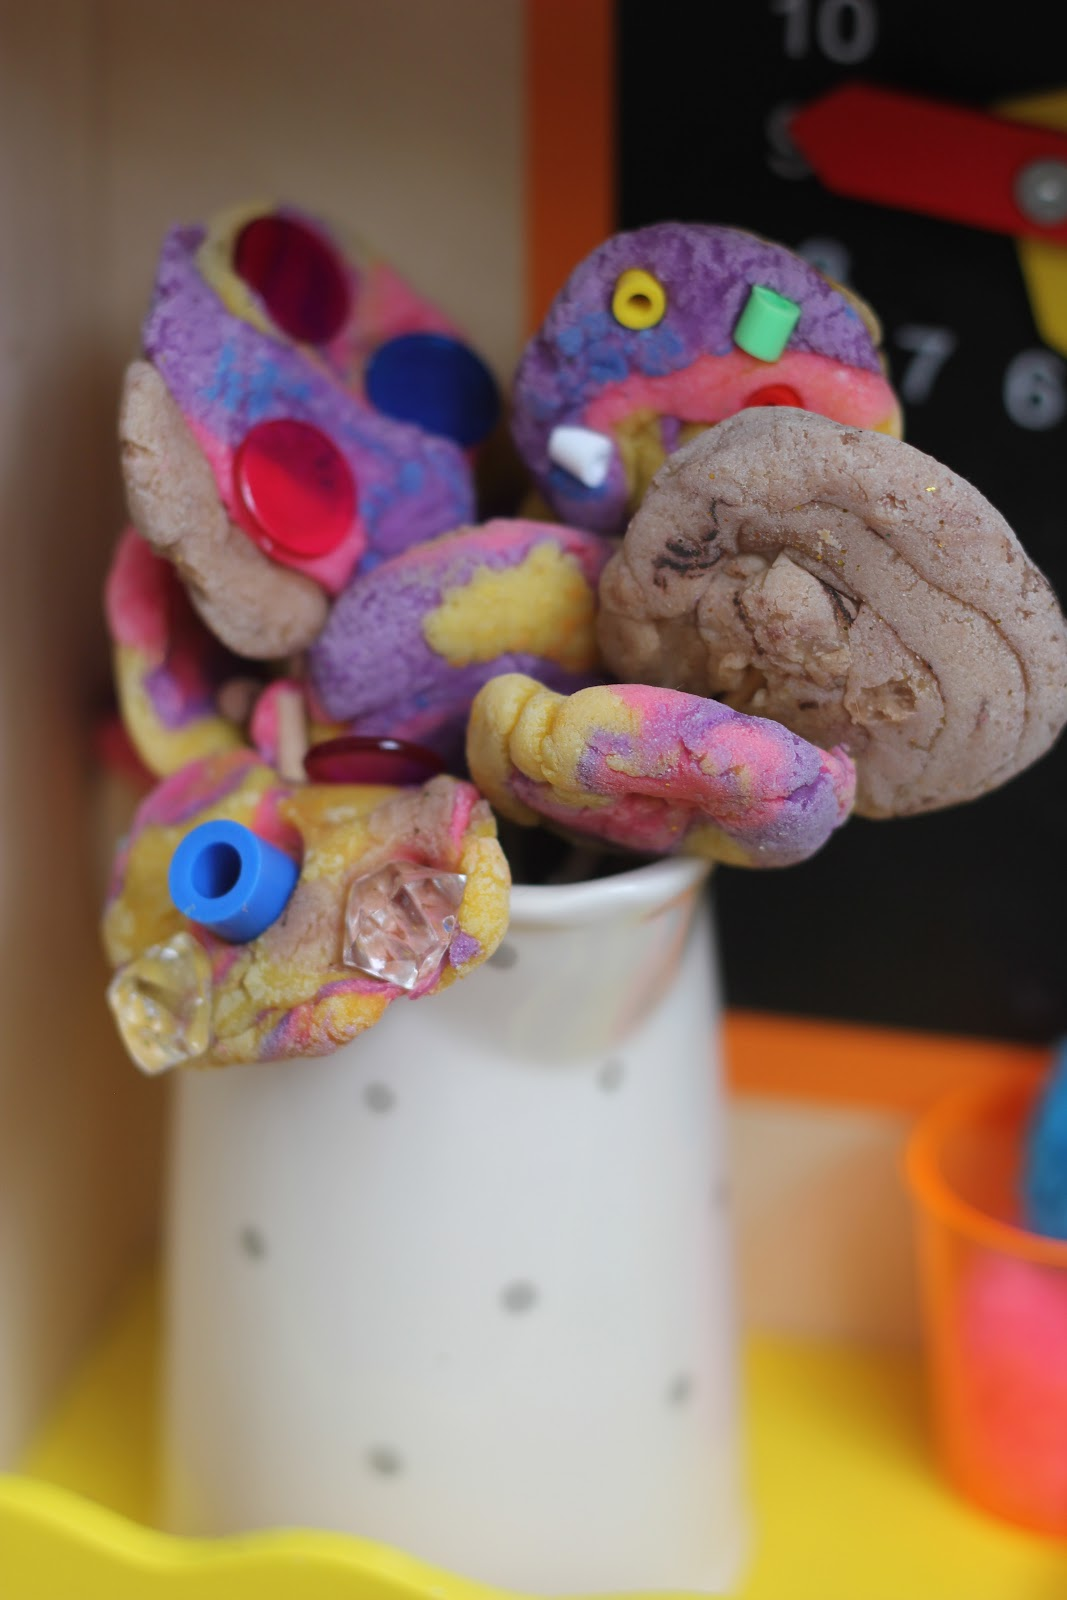 willy wonka and the chocolate factory play dough the willy wonka and the chocolate factory play dough